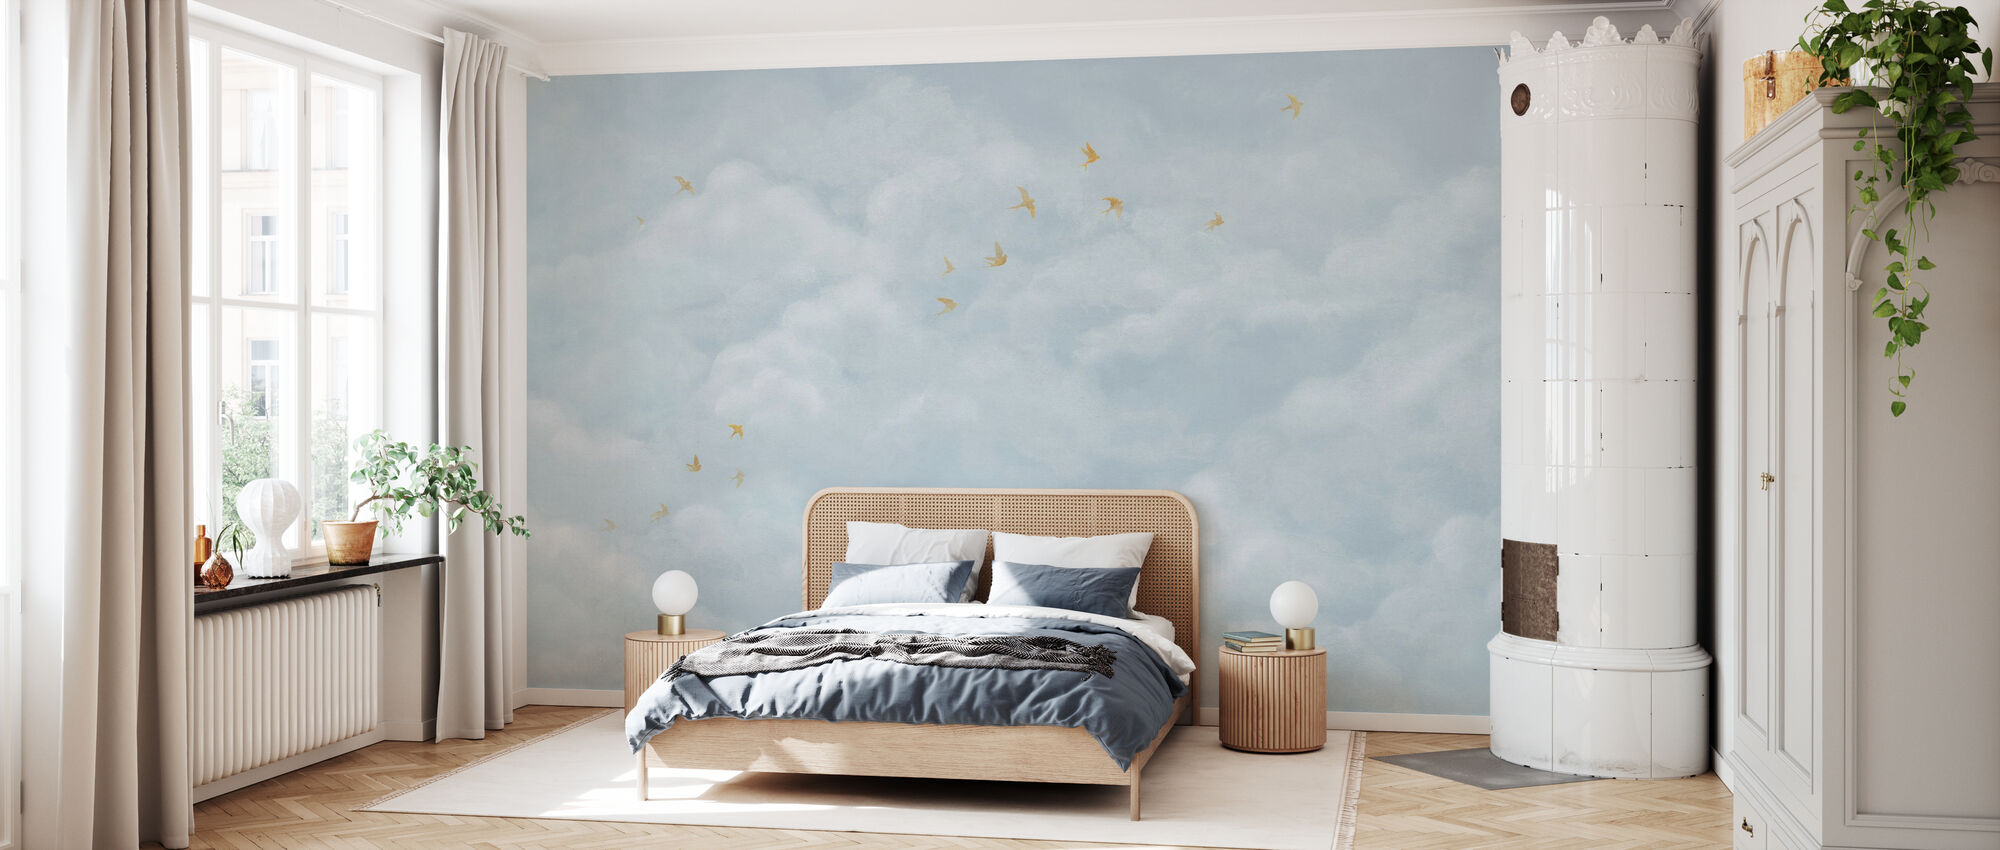 Tender Clouds with Yellow Swallows - Soft Blue - Wallpaper - Bedroom